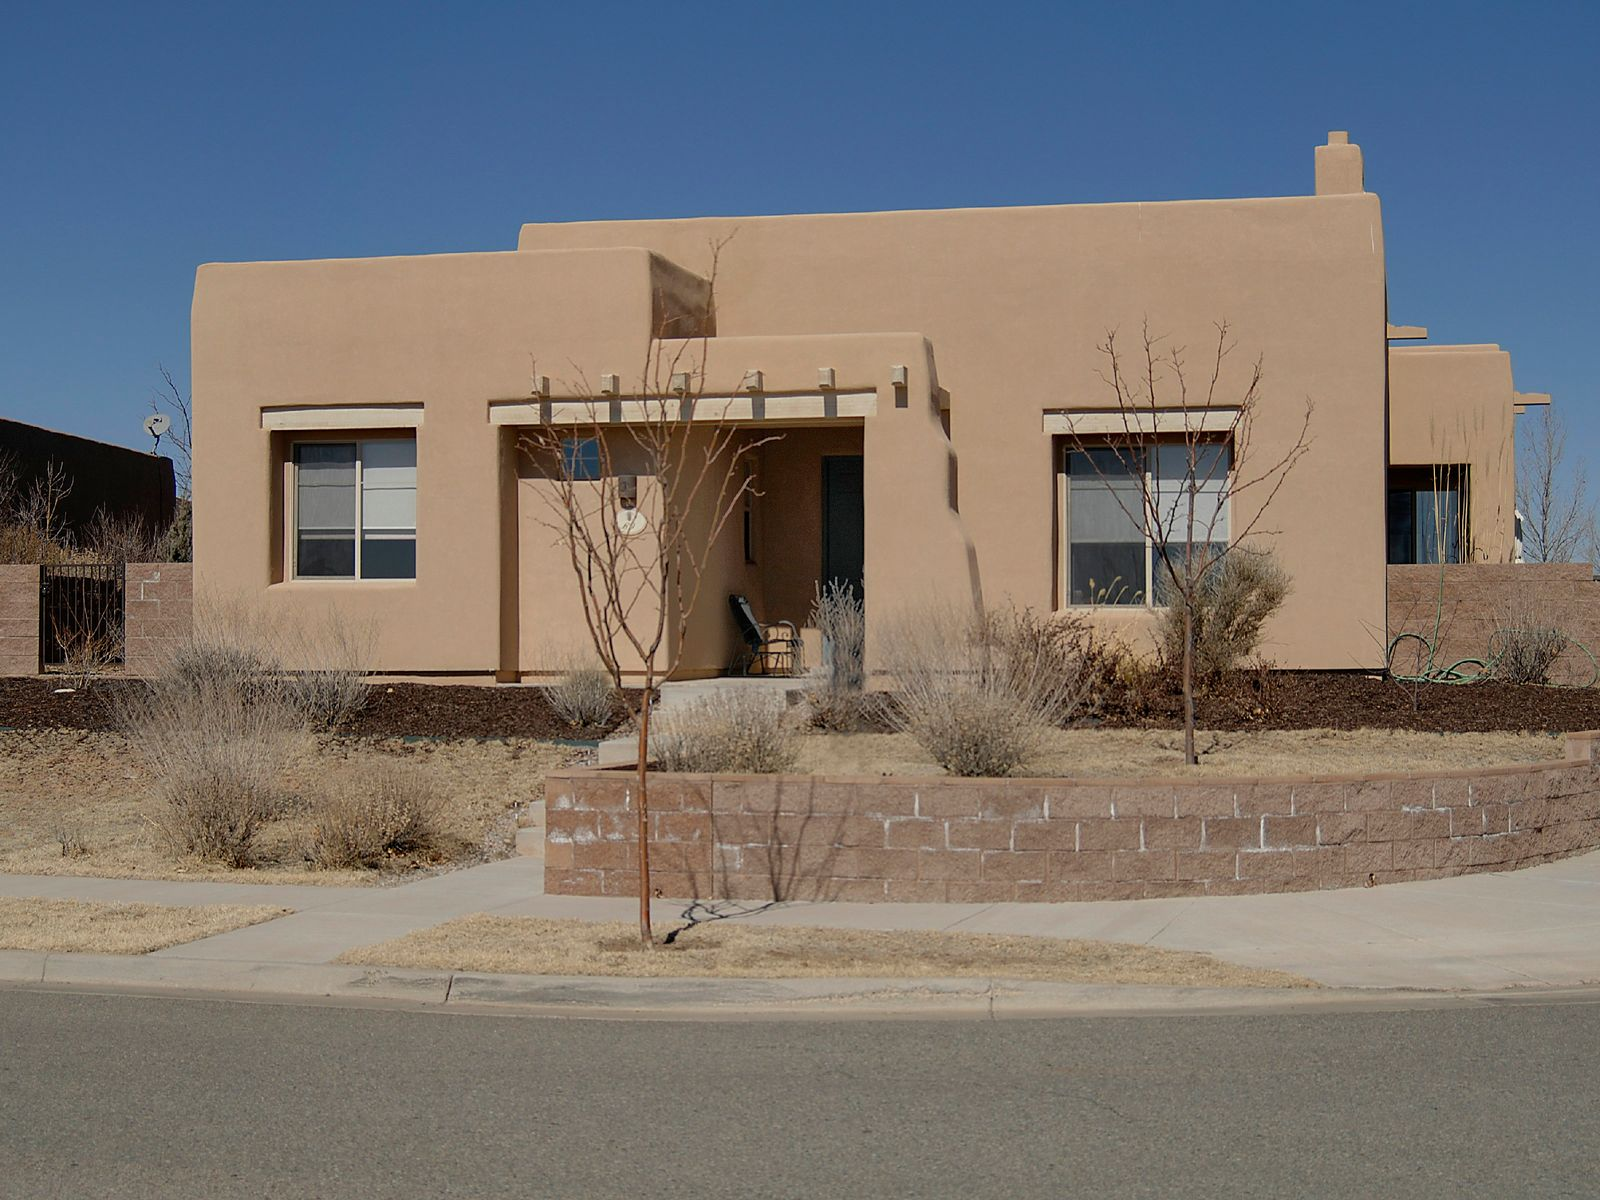 69 Johnson Mesa, Santa Fe NM Single Family Home - Santa Fe Real Estate